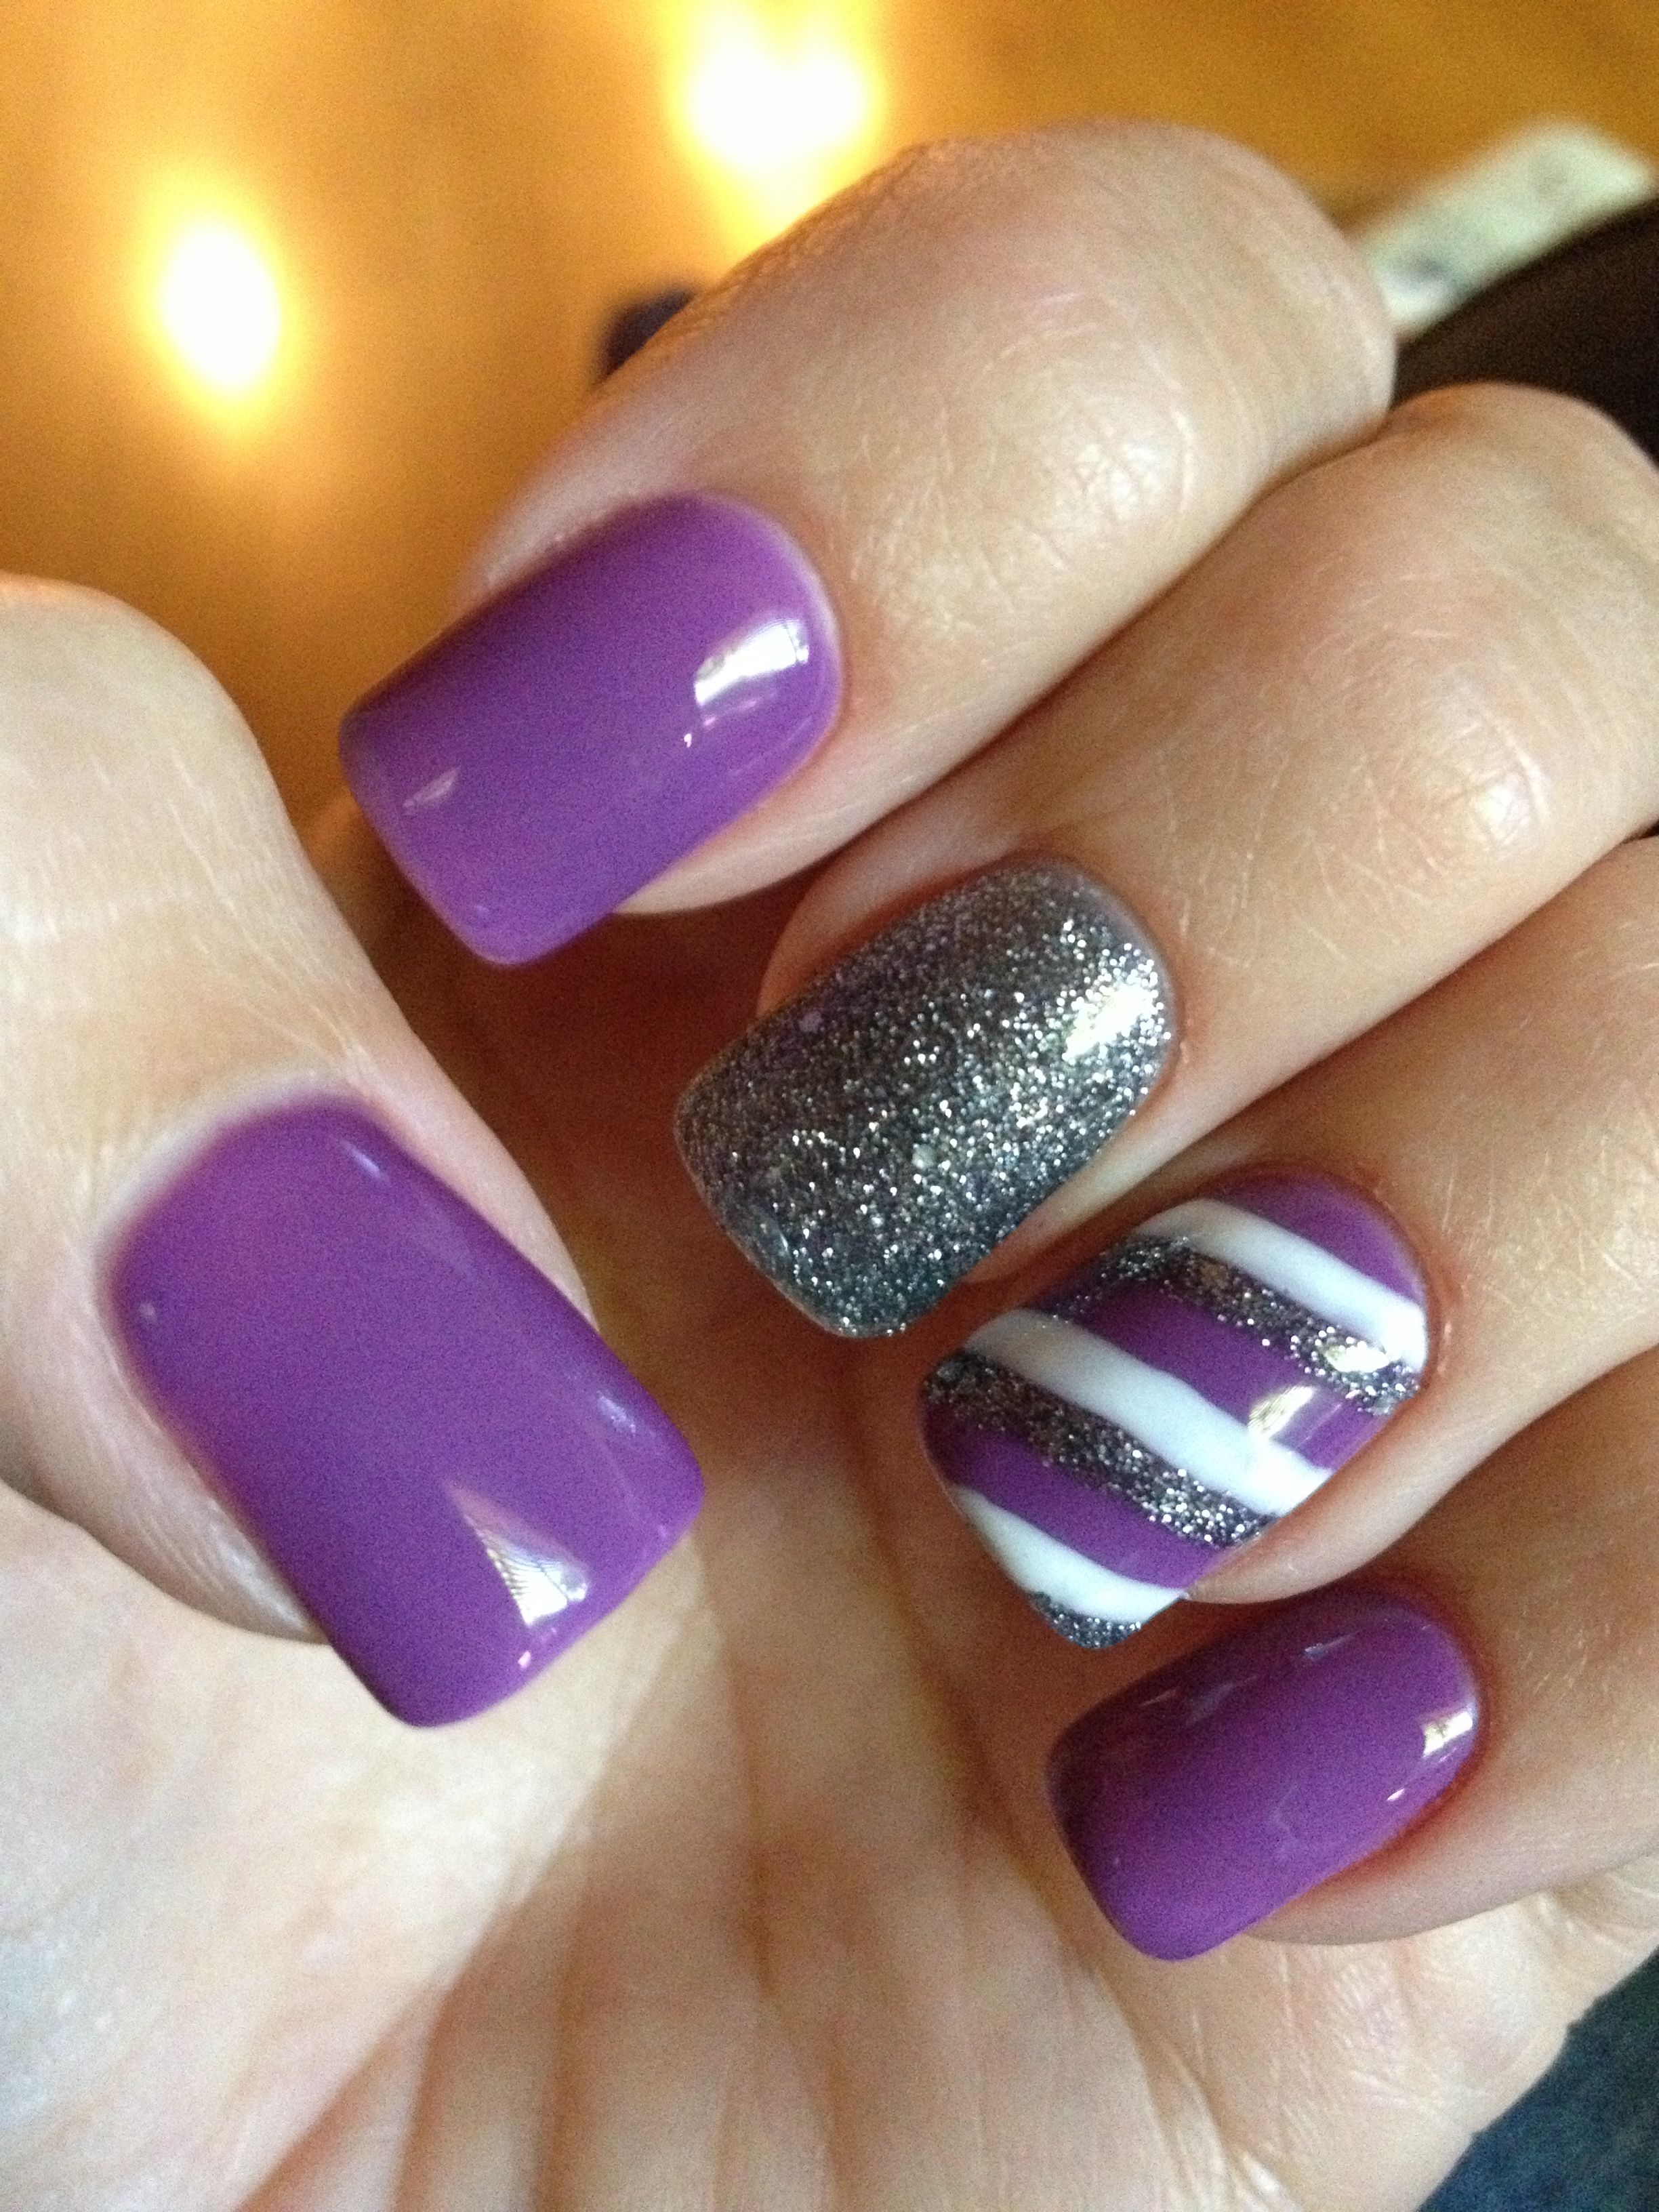 Purple Nails With Sparkles Cute Idea For Dance Co Activity Purple Nail Art Purple Nail Designs Purple Nail Art Designs